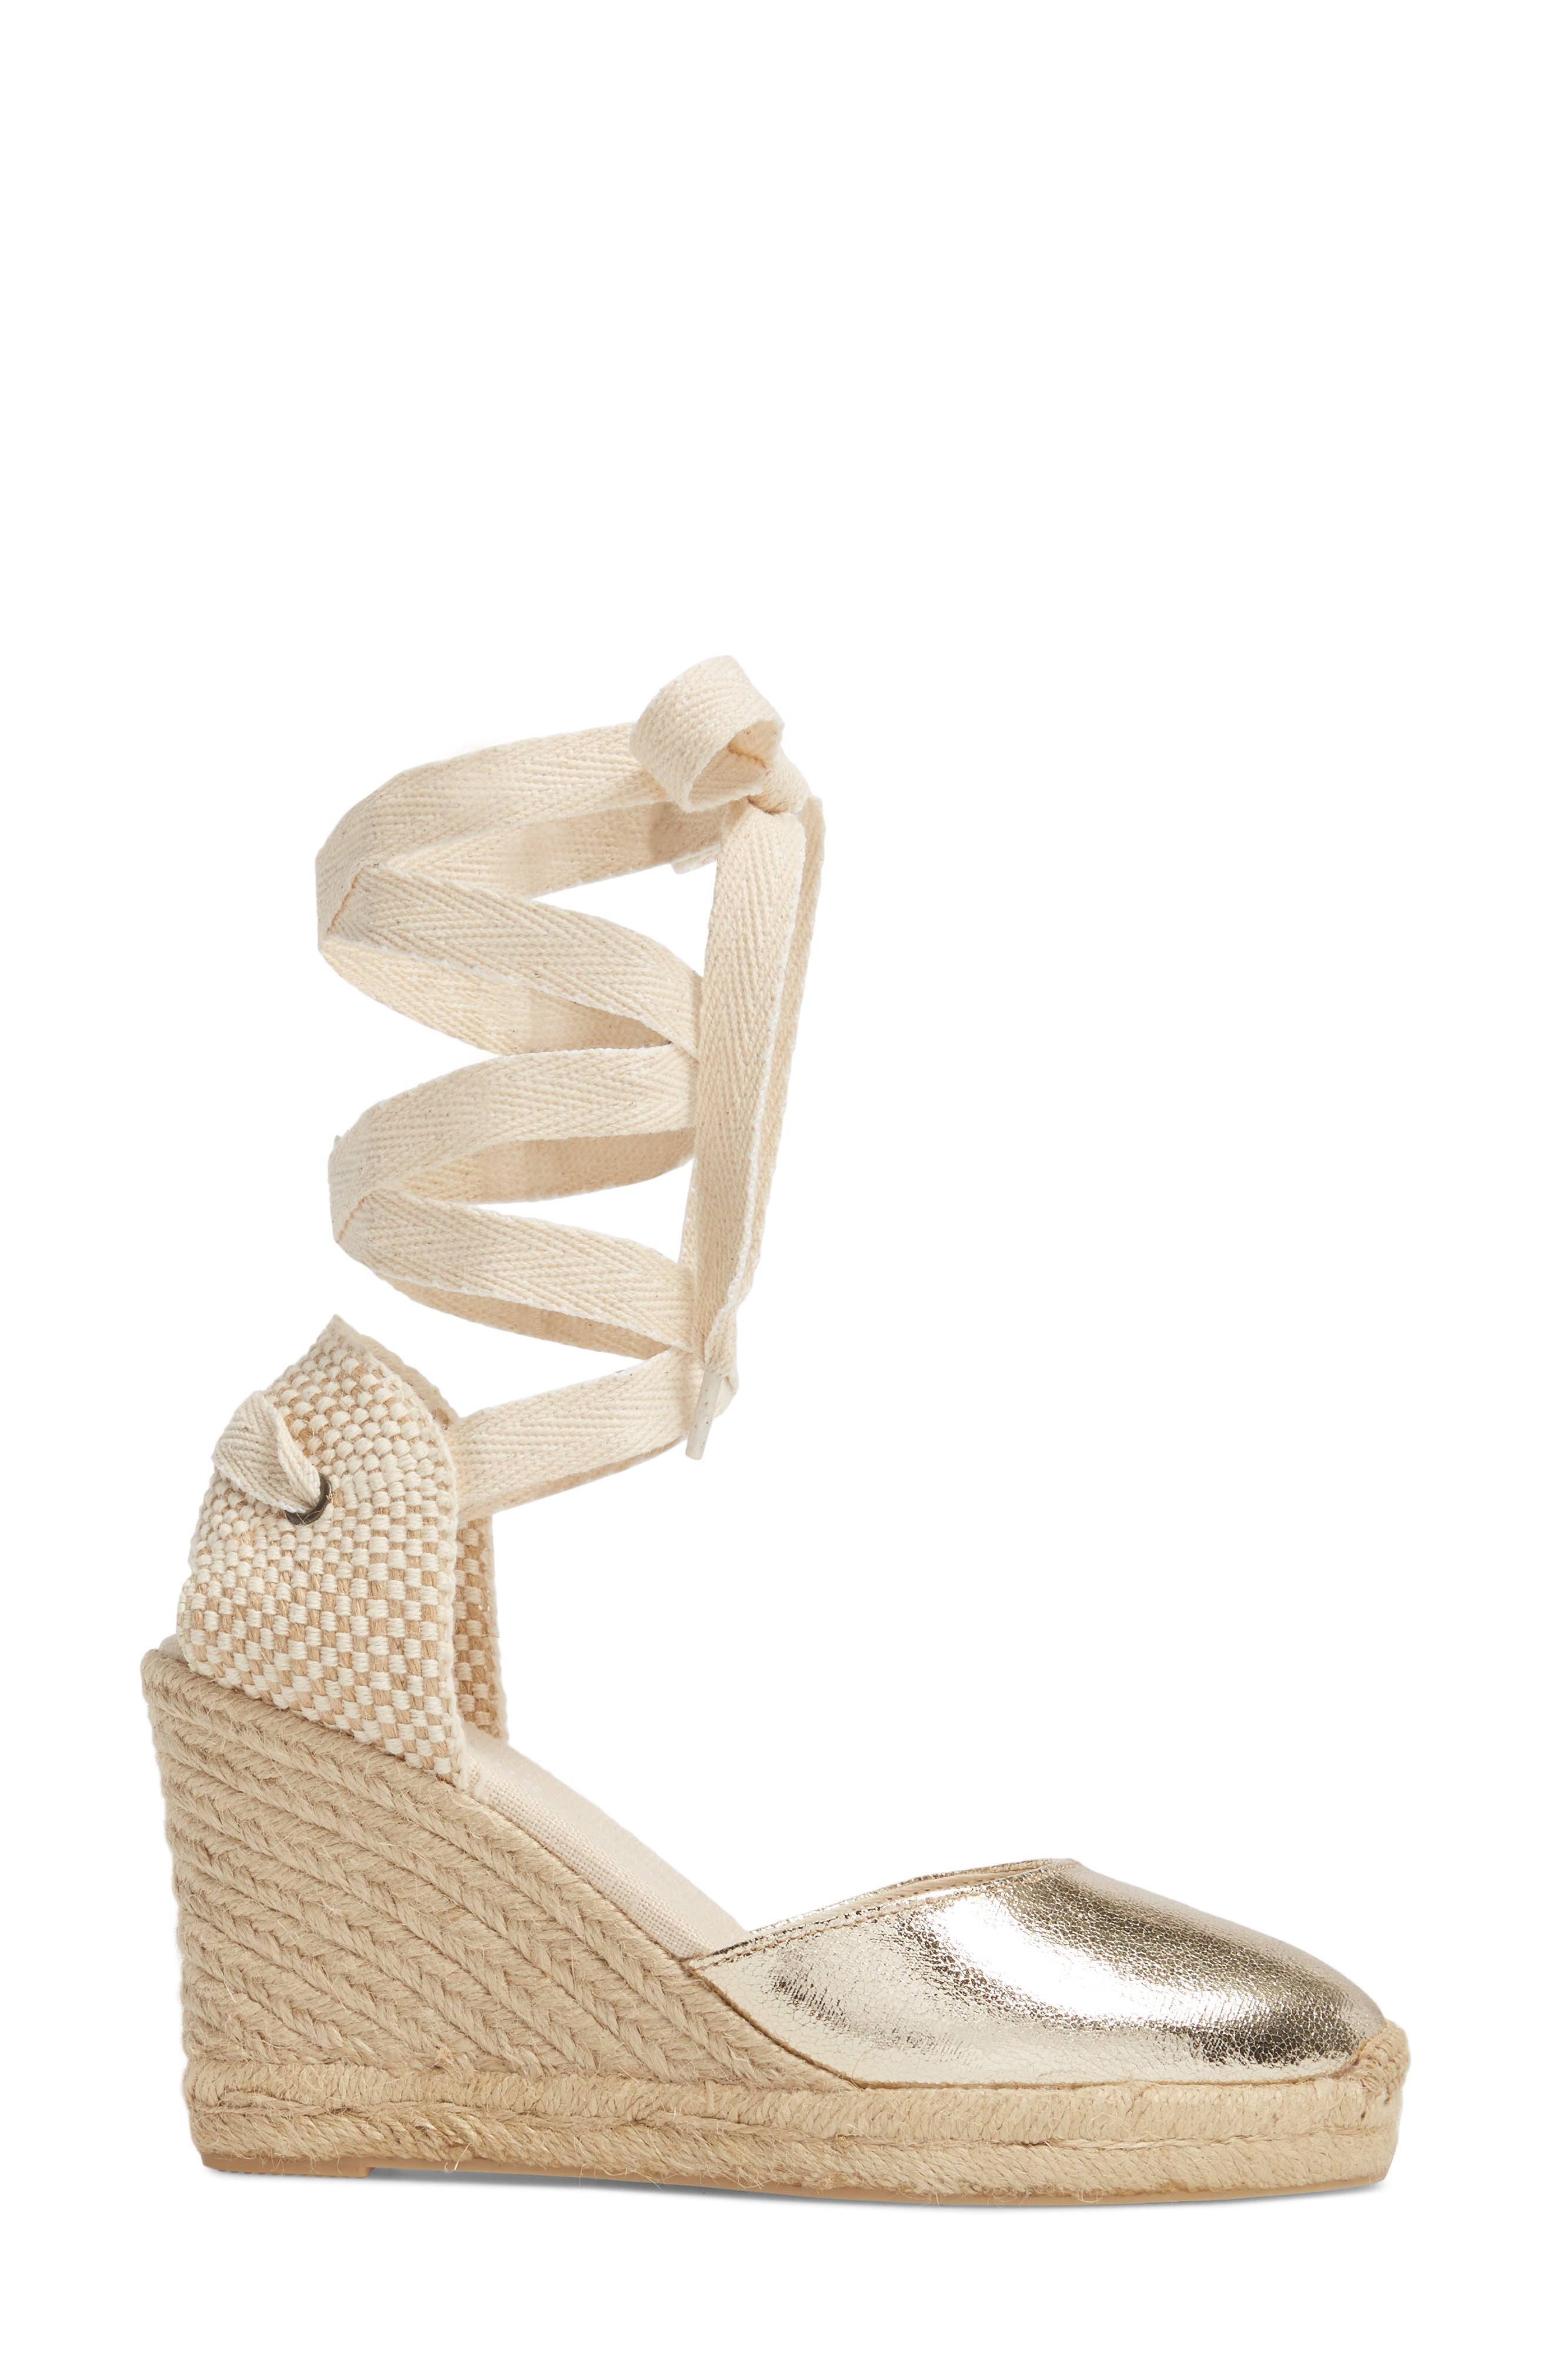 Wedge Lace-Up Espadrille Sandal,                             Alternate thumbnail 3, color,                             711